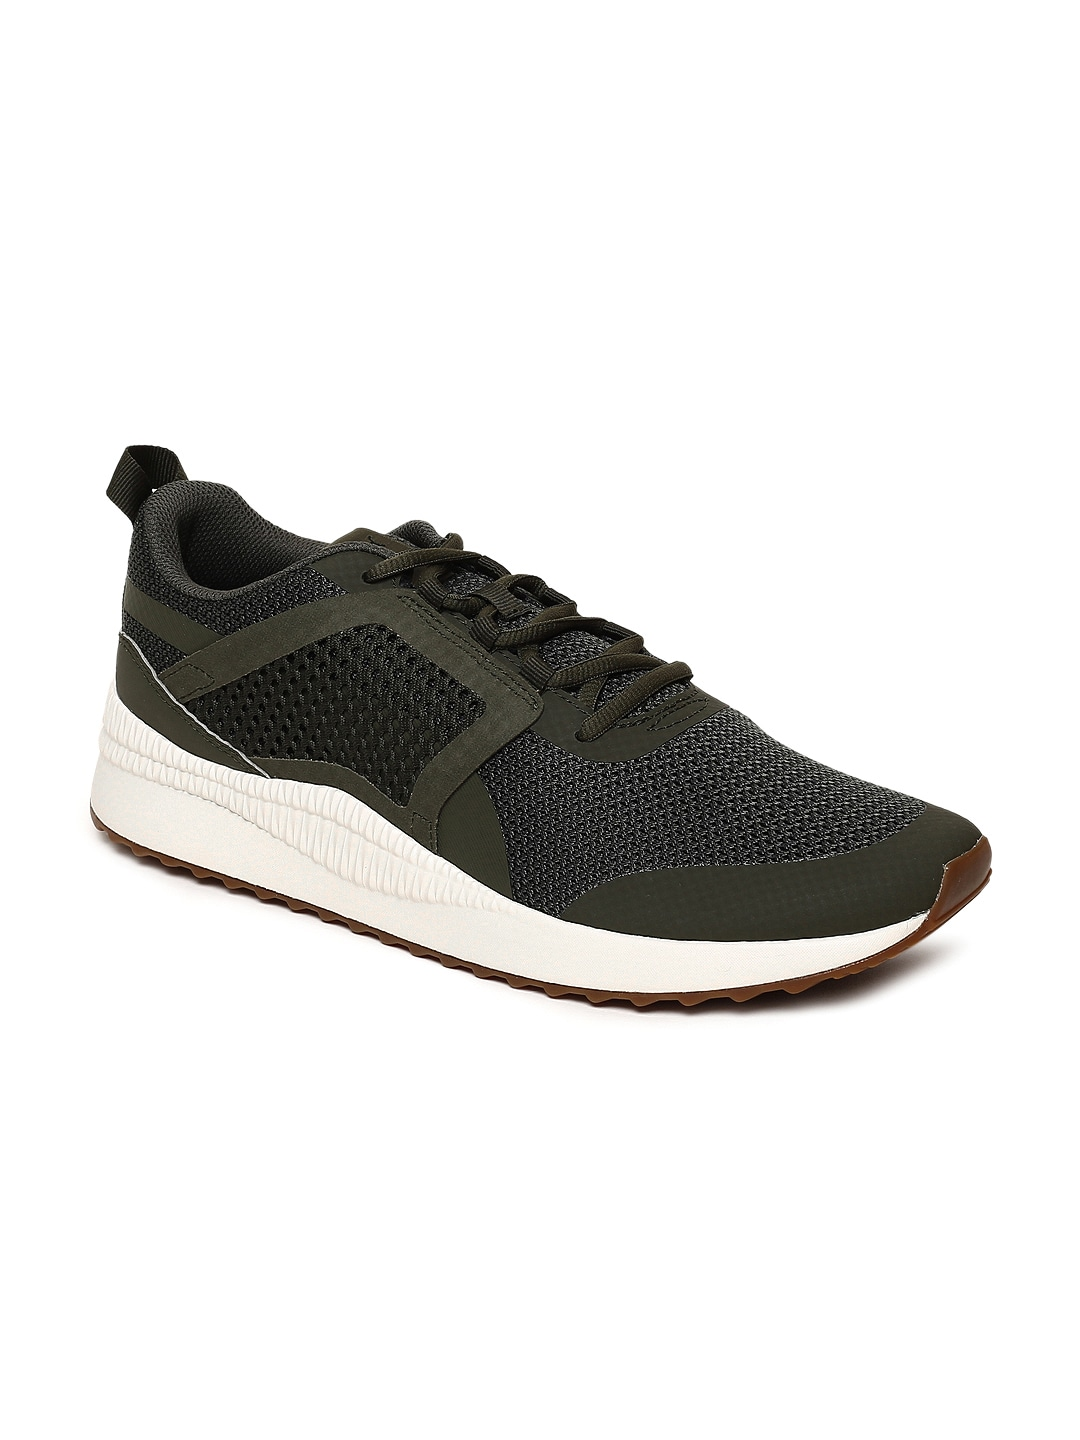 best sneakers 3053d 21fa7 Puma Olive Shoes - Buy Puma Olive Shoes online in India